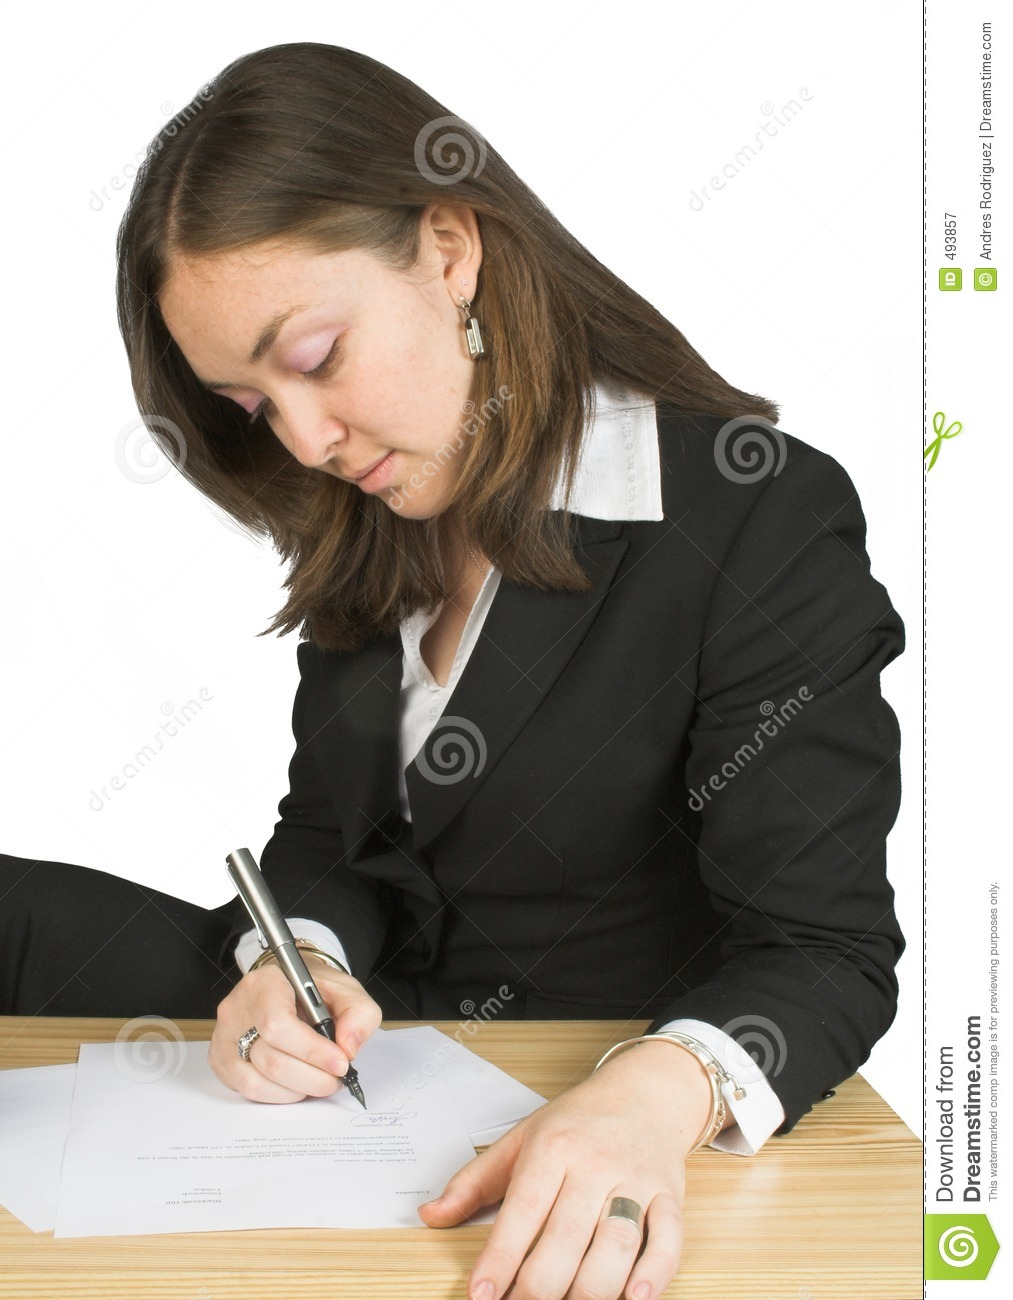 women in business research paper